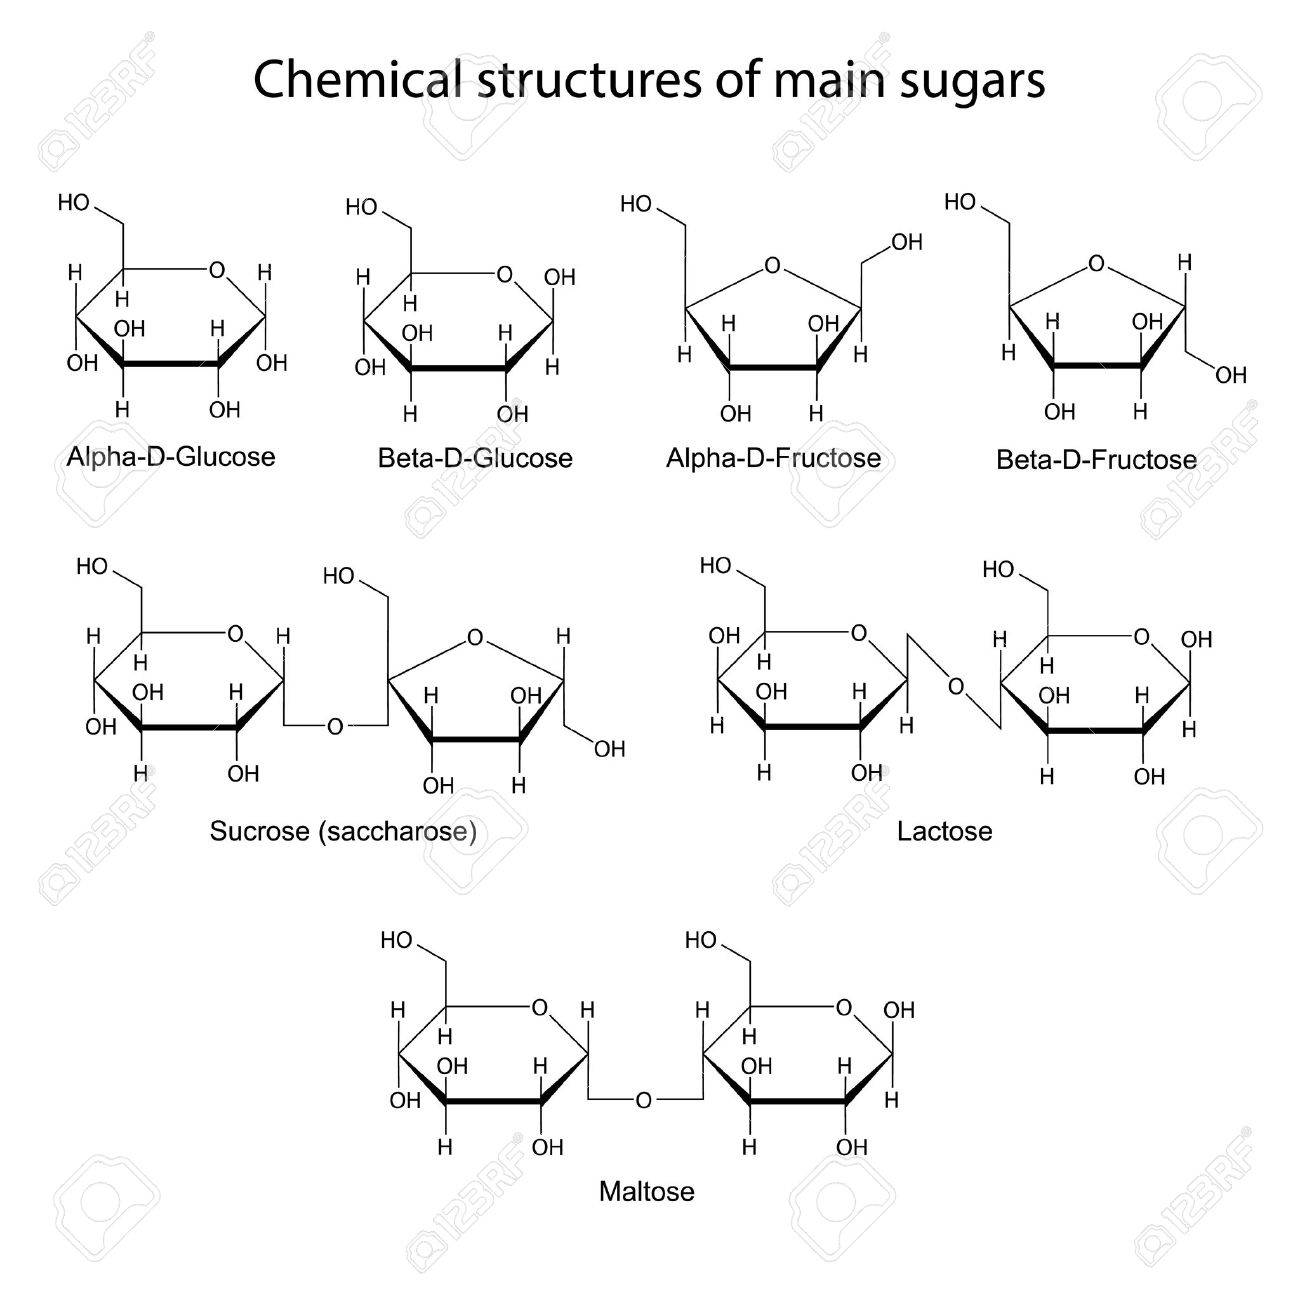 Chemical structures of main sugars: mono- and disaccharides, 2d illustration, isolated on white background, skeletal style - 31084546